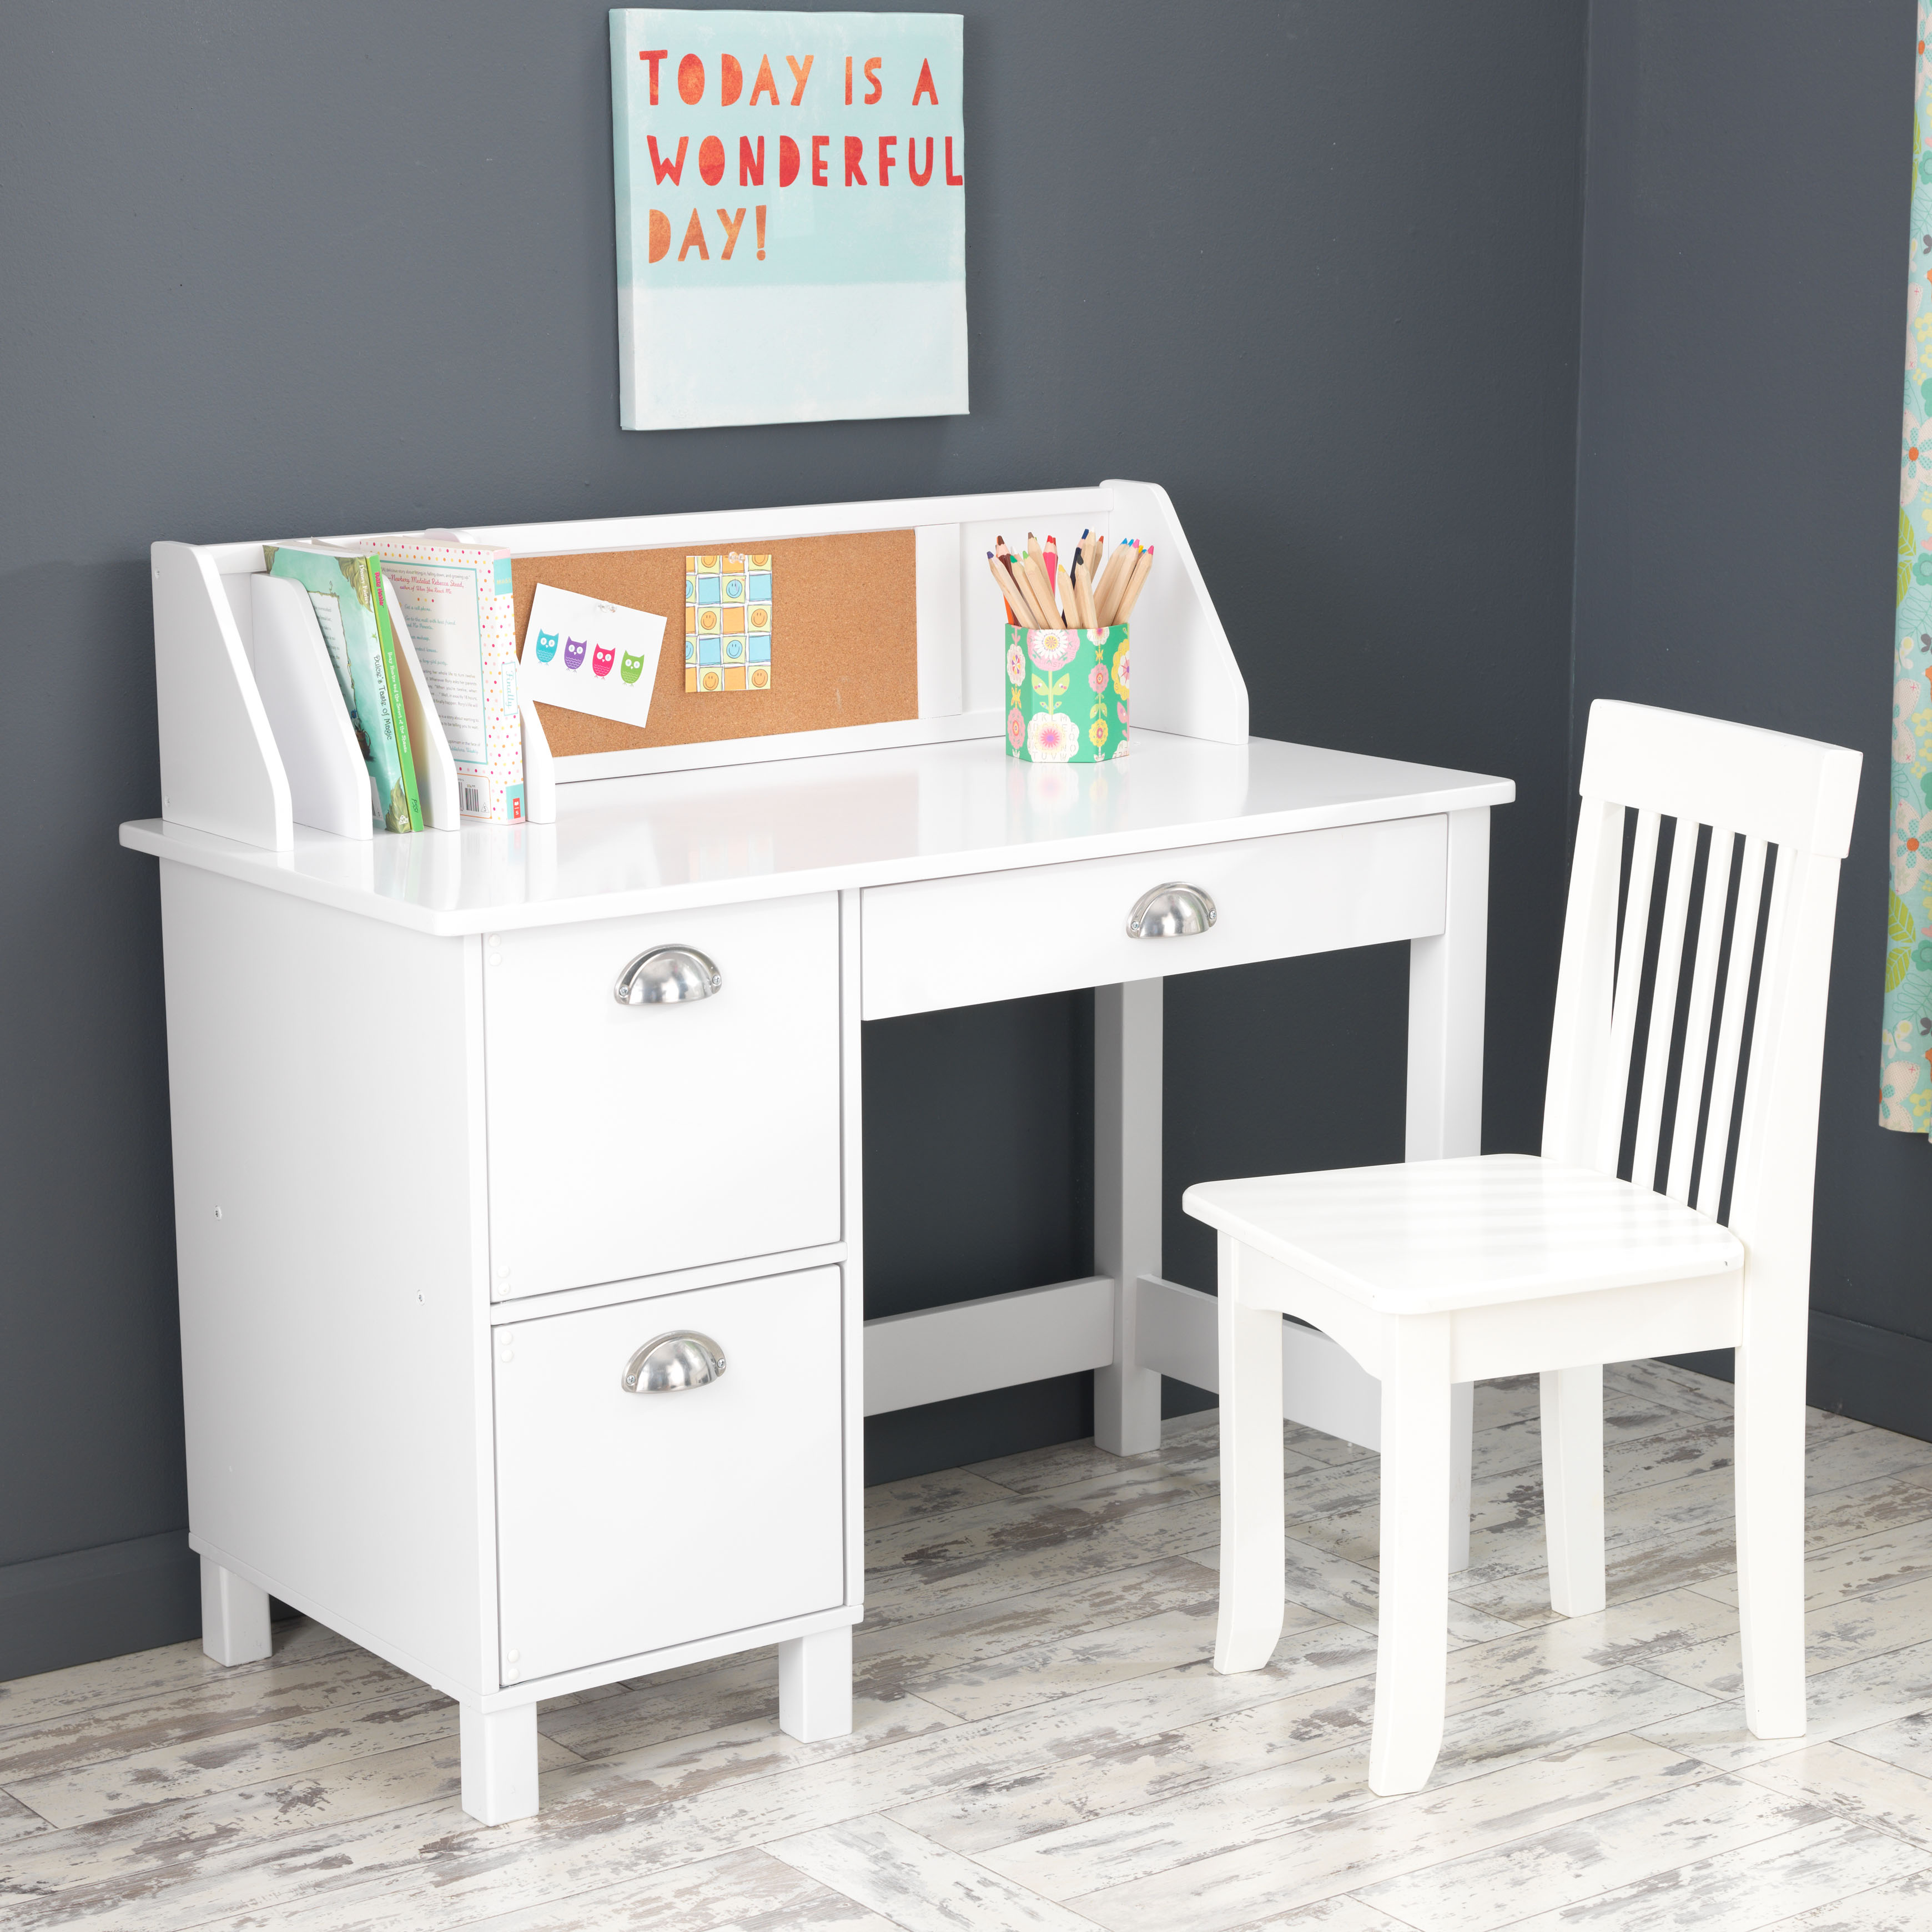 Superbe Product Image KidKraft Kids Desk With Chair And Corkboard, White Or Espresso